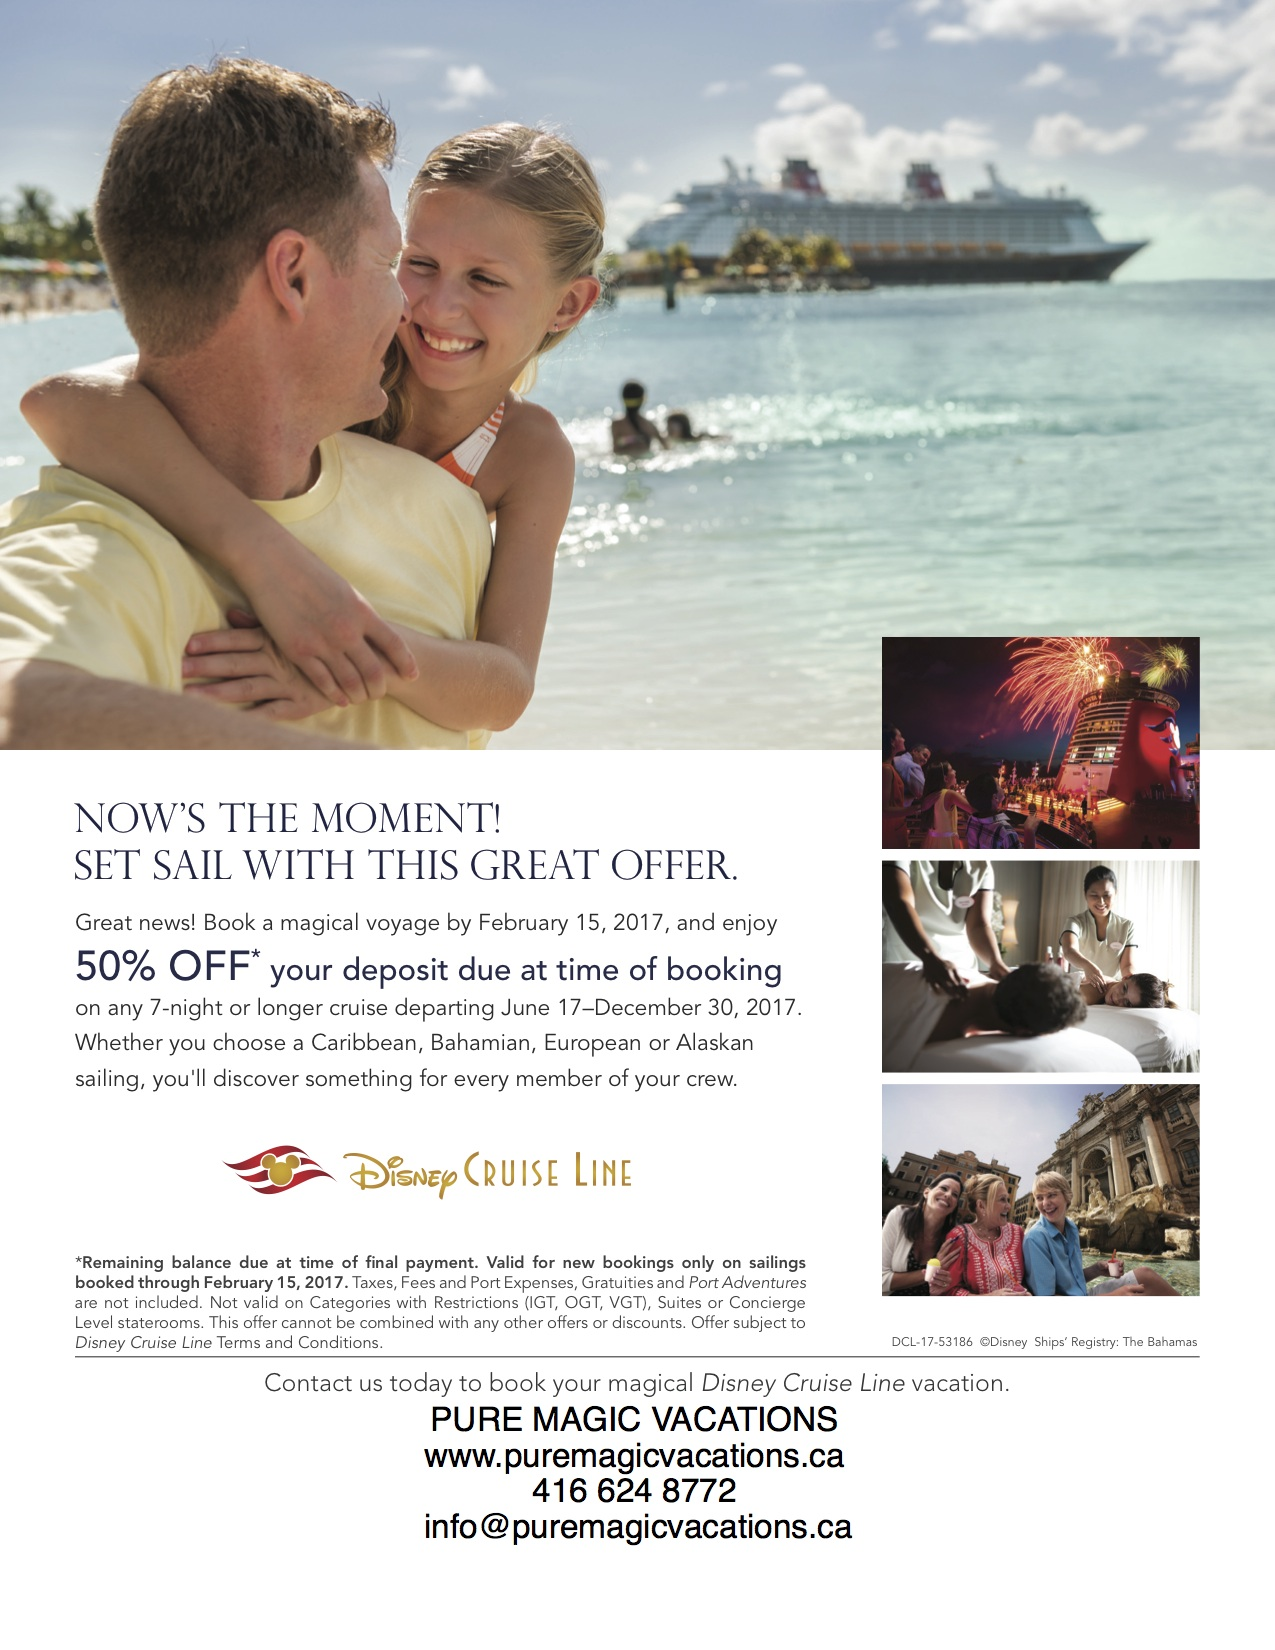 NOW'S THE MOMENT! SET SAIL WITH THIS GREAT OFFER!